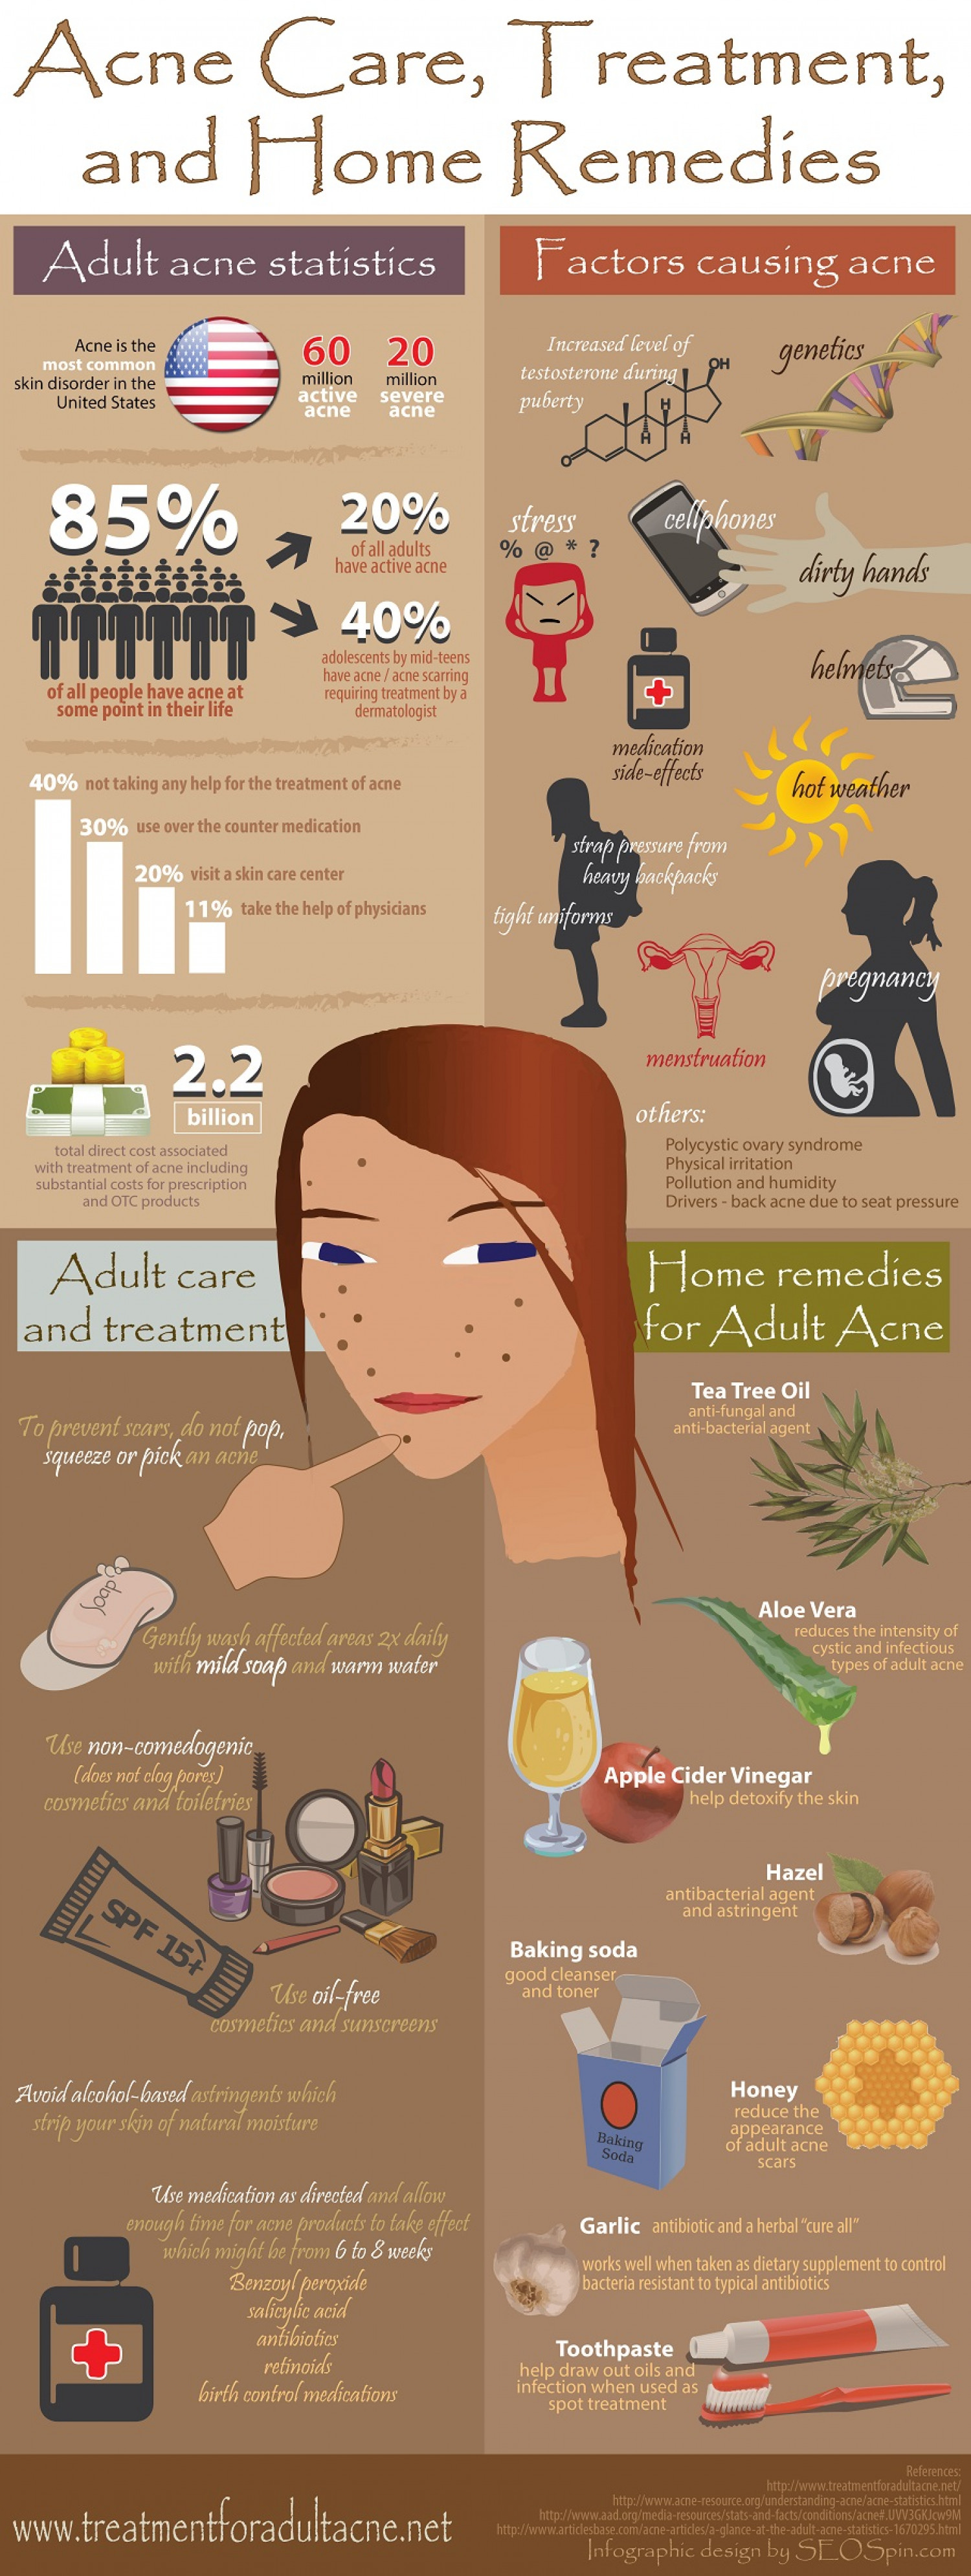 Acne Care, Treatment, and Home Remedies Infographic